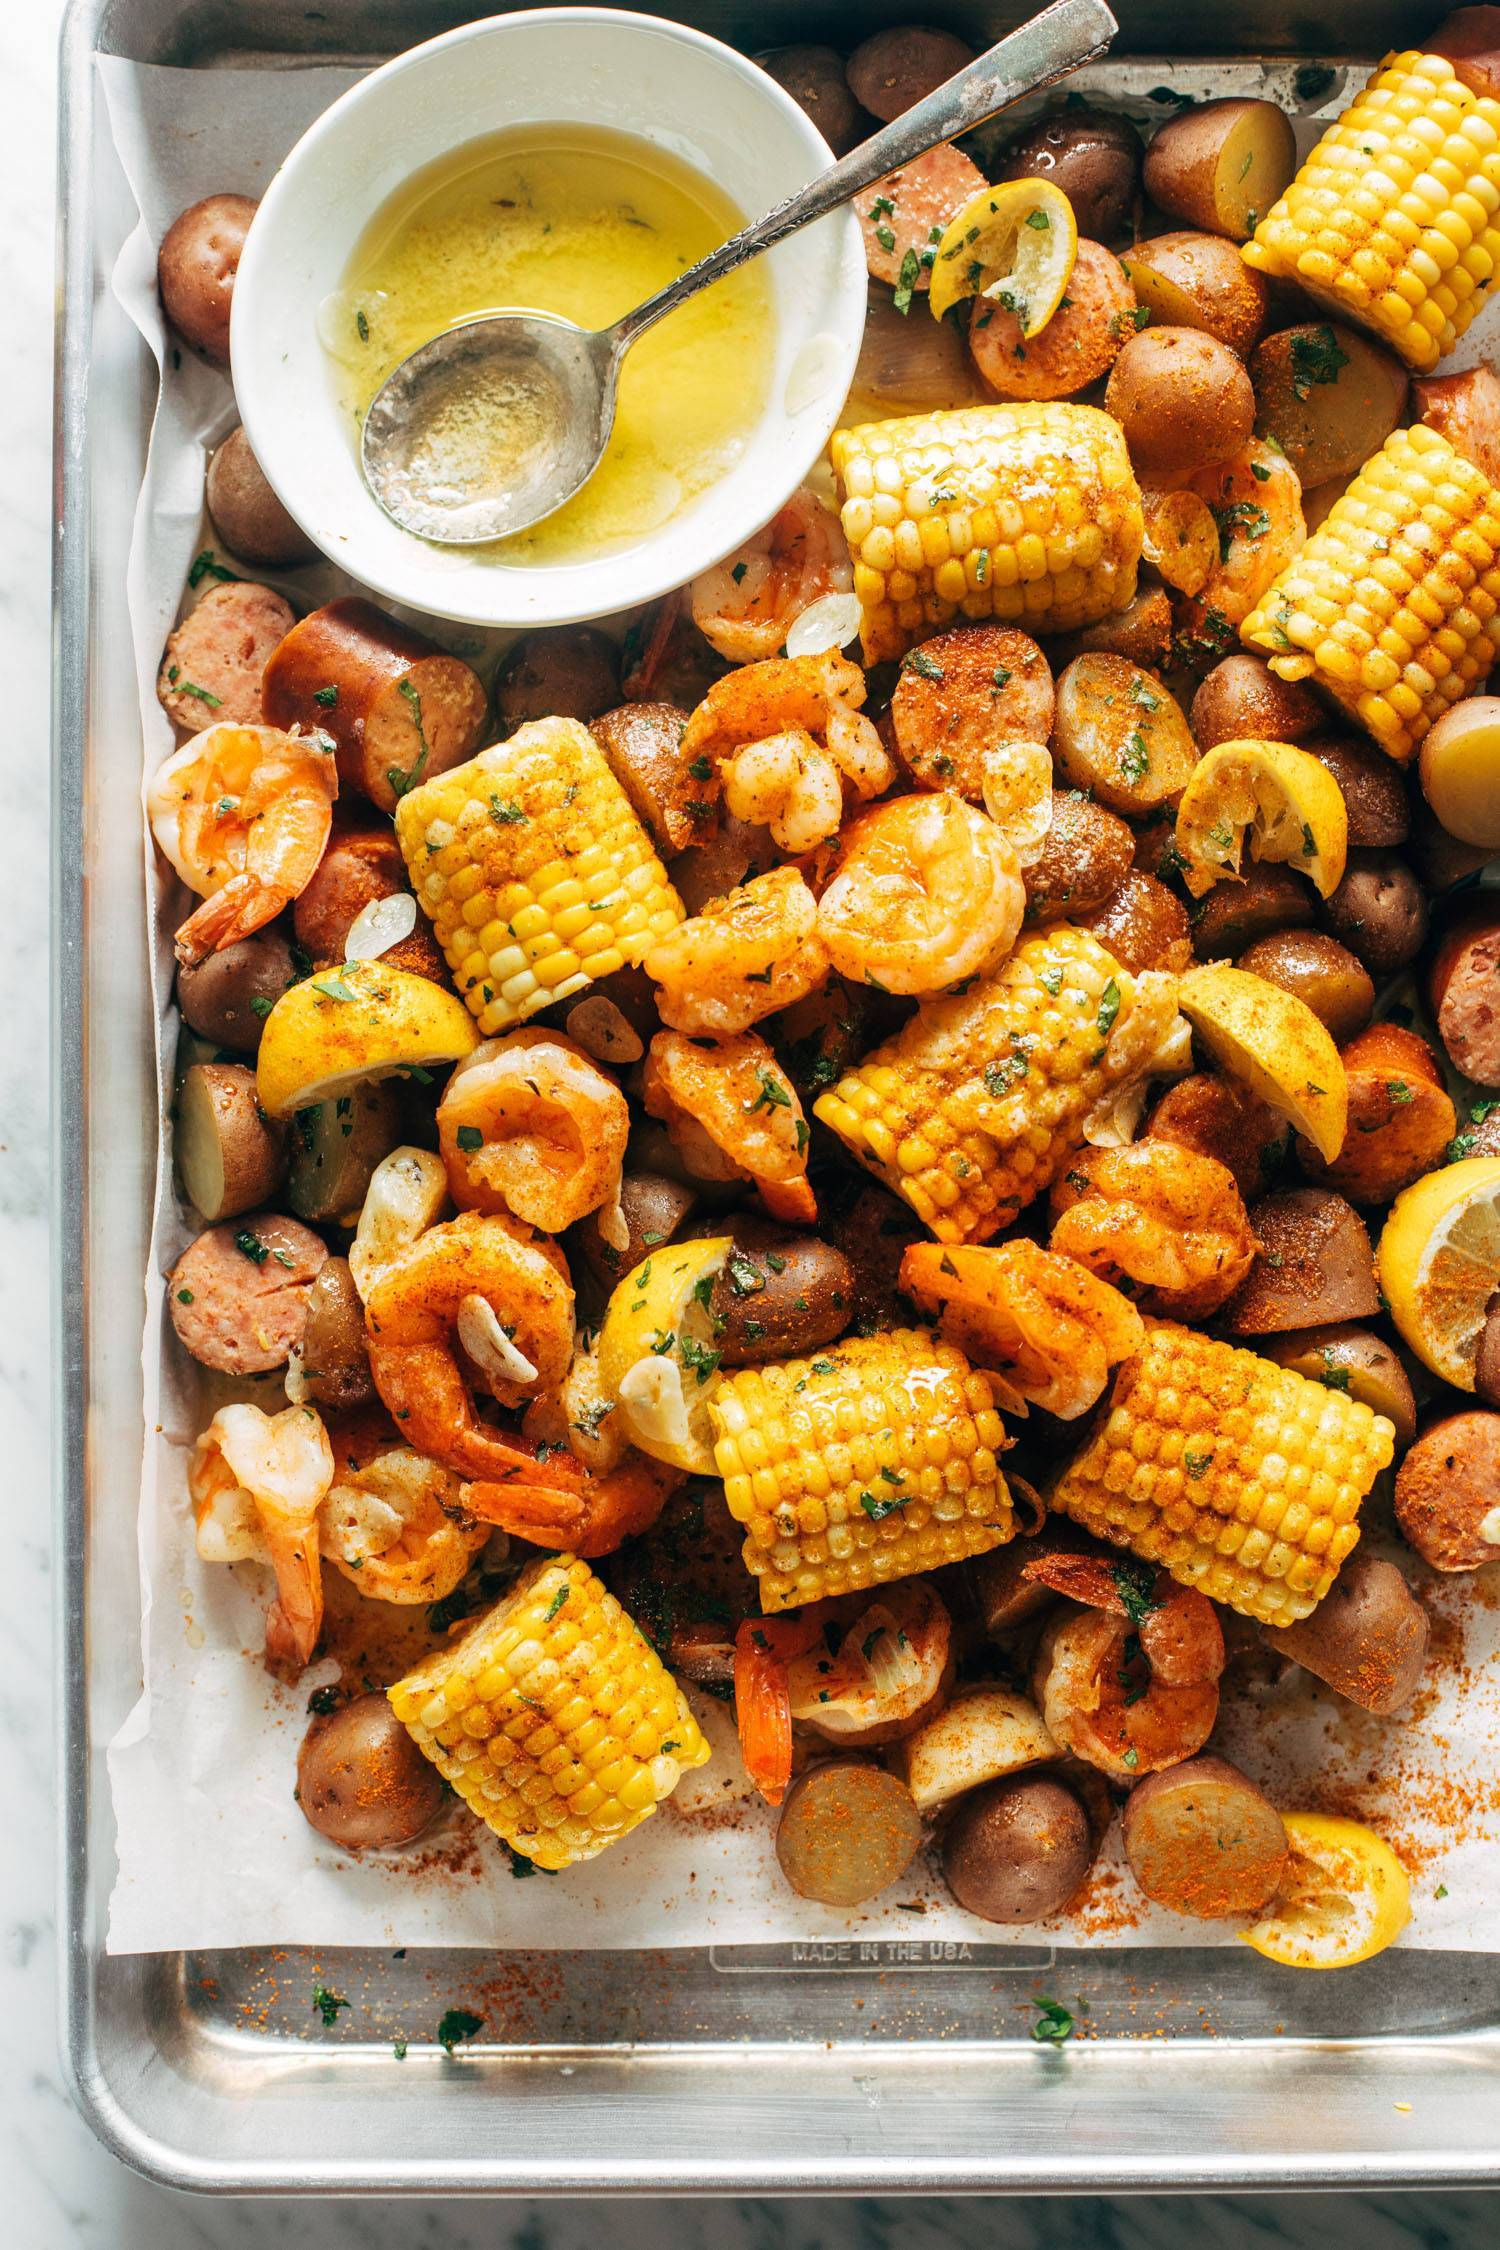 Shrimp boil on a sheet pan with garlic butter. The garlic butter is in a bowl with a spoon and there's corn, lemon wedges, shrimp, and kielbasa on the sheet pan with potatoes.